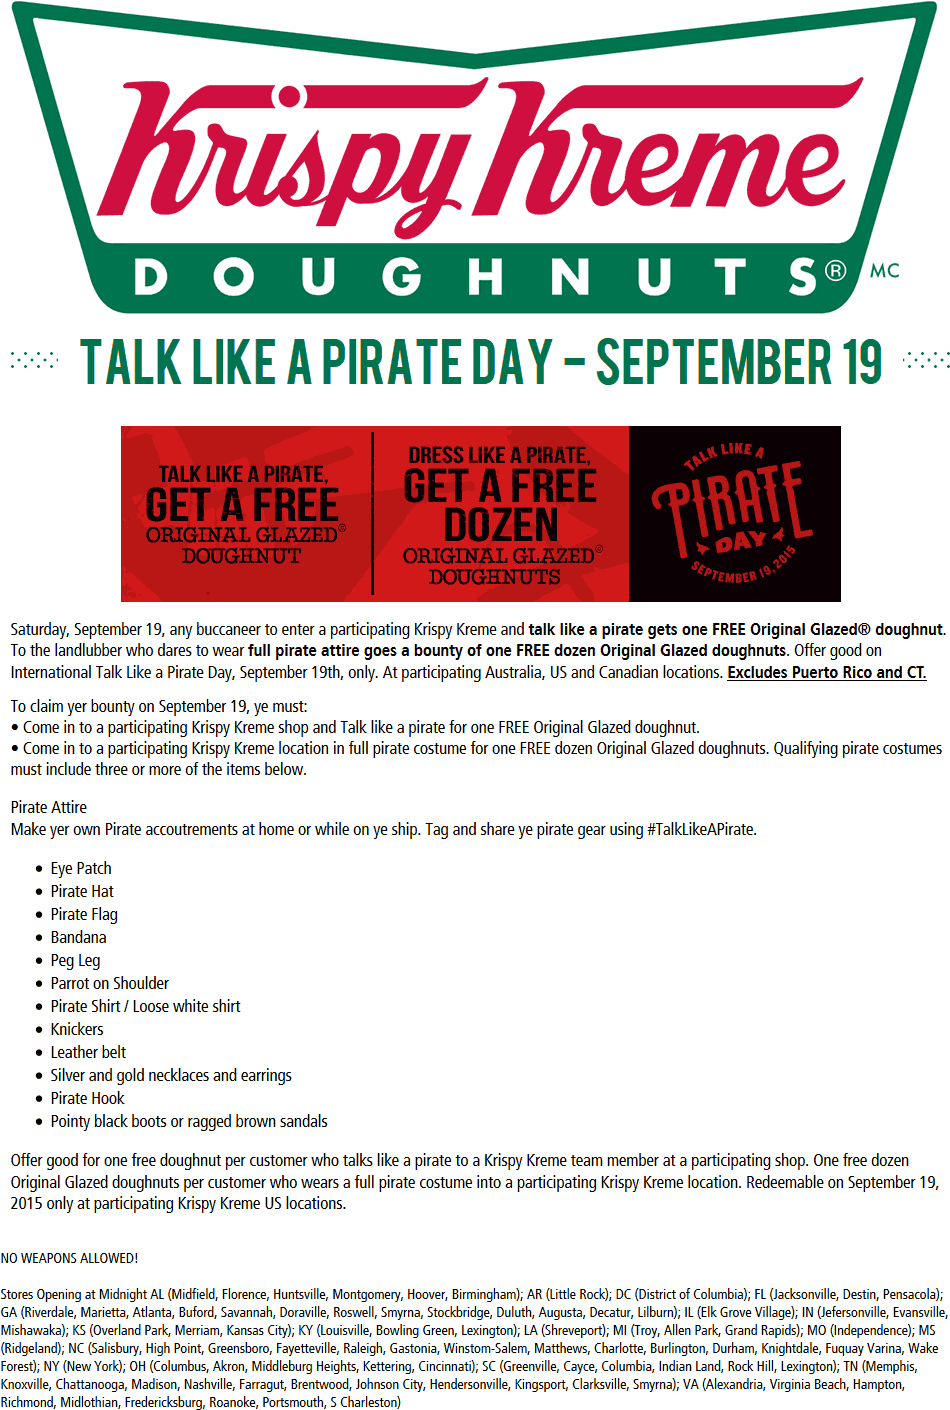 Krispy Kreme Coupon June 2017 Free dozen doughnuts for pirates the 19th at Krispy Kreme